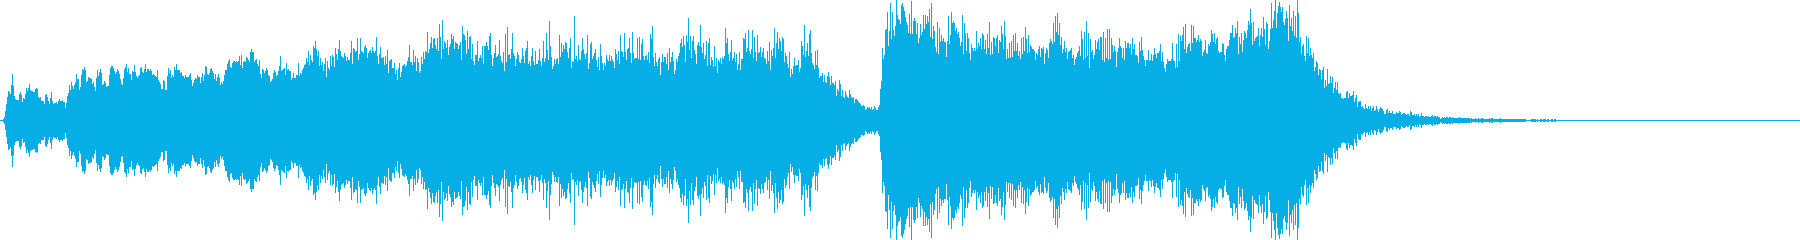 Brass fanfare for ceremonies and events's reproduced waveform